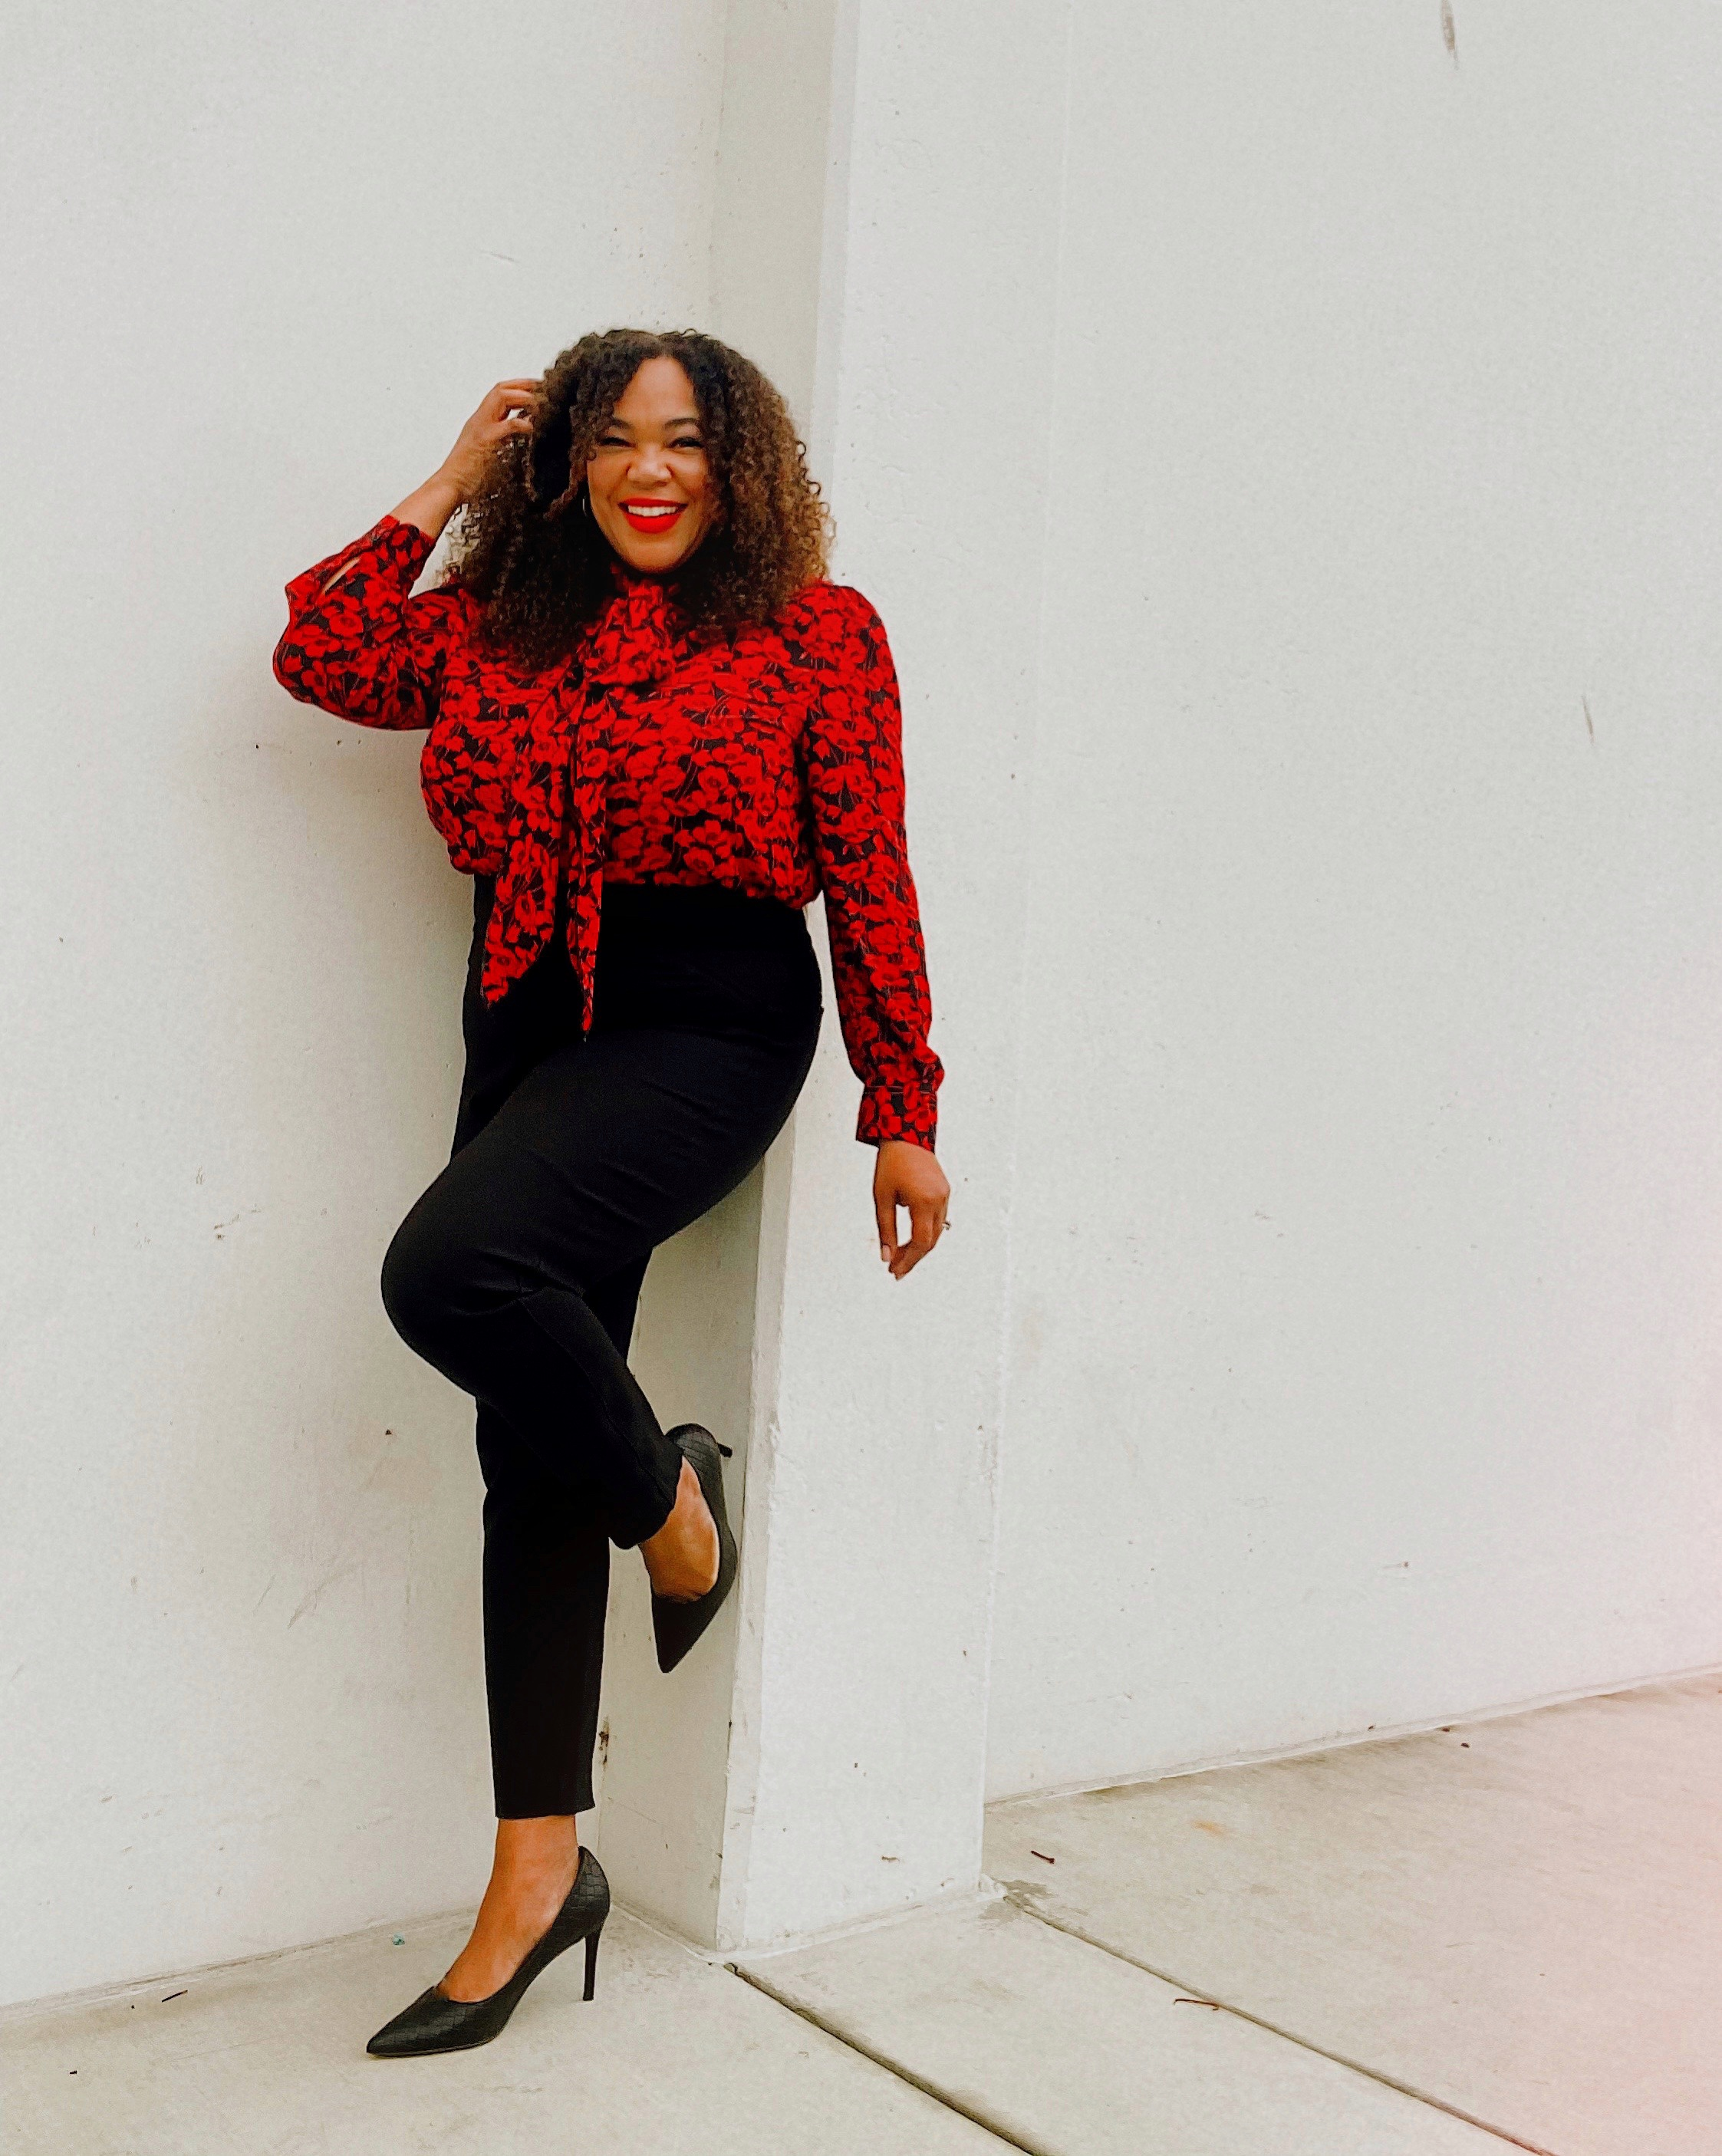 A black woman in black pants